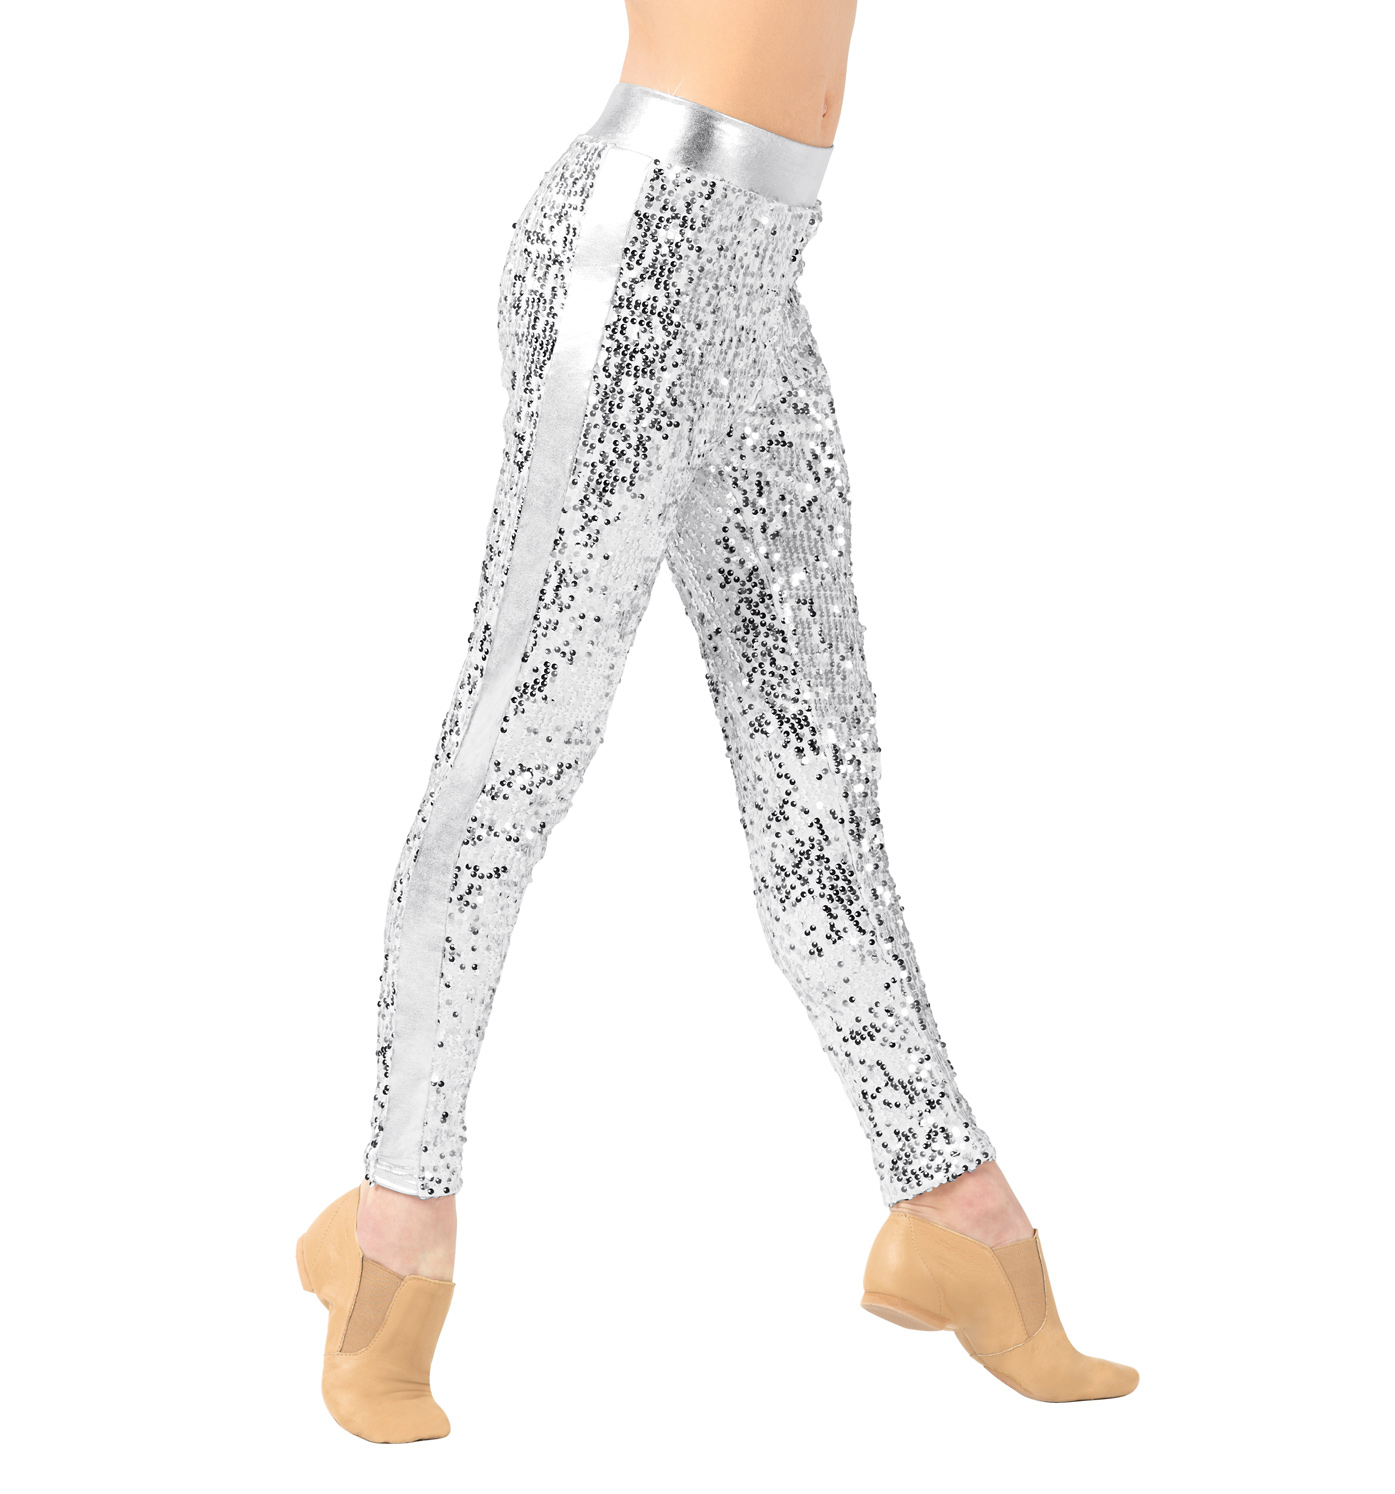 Shop for kids sparkly leggings online at Target. Free shipping on purchases over $35 and save 5% every day with your Target REDcard.